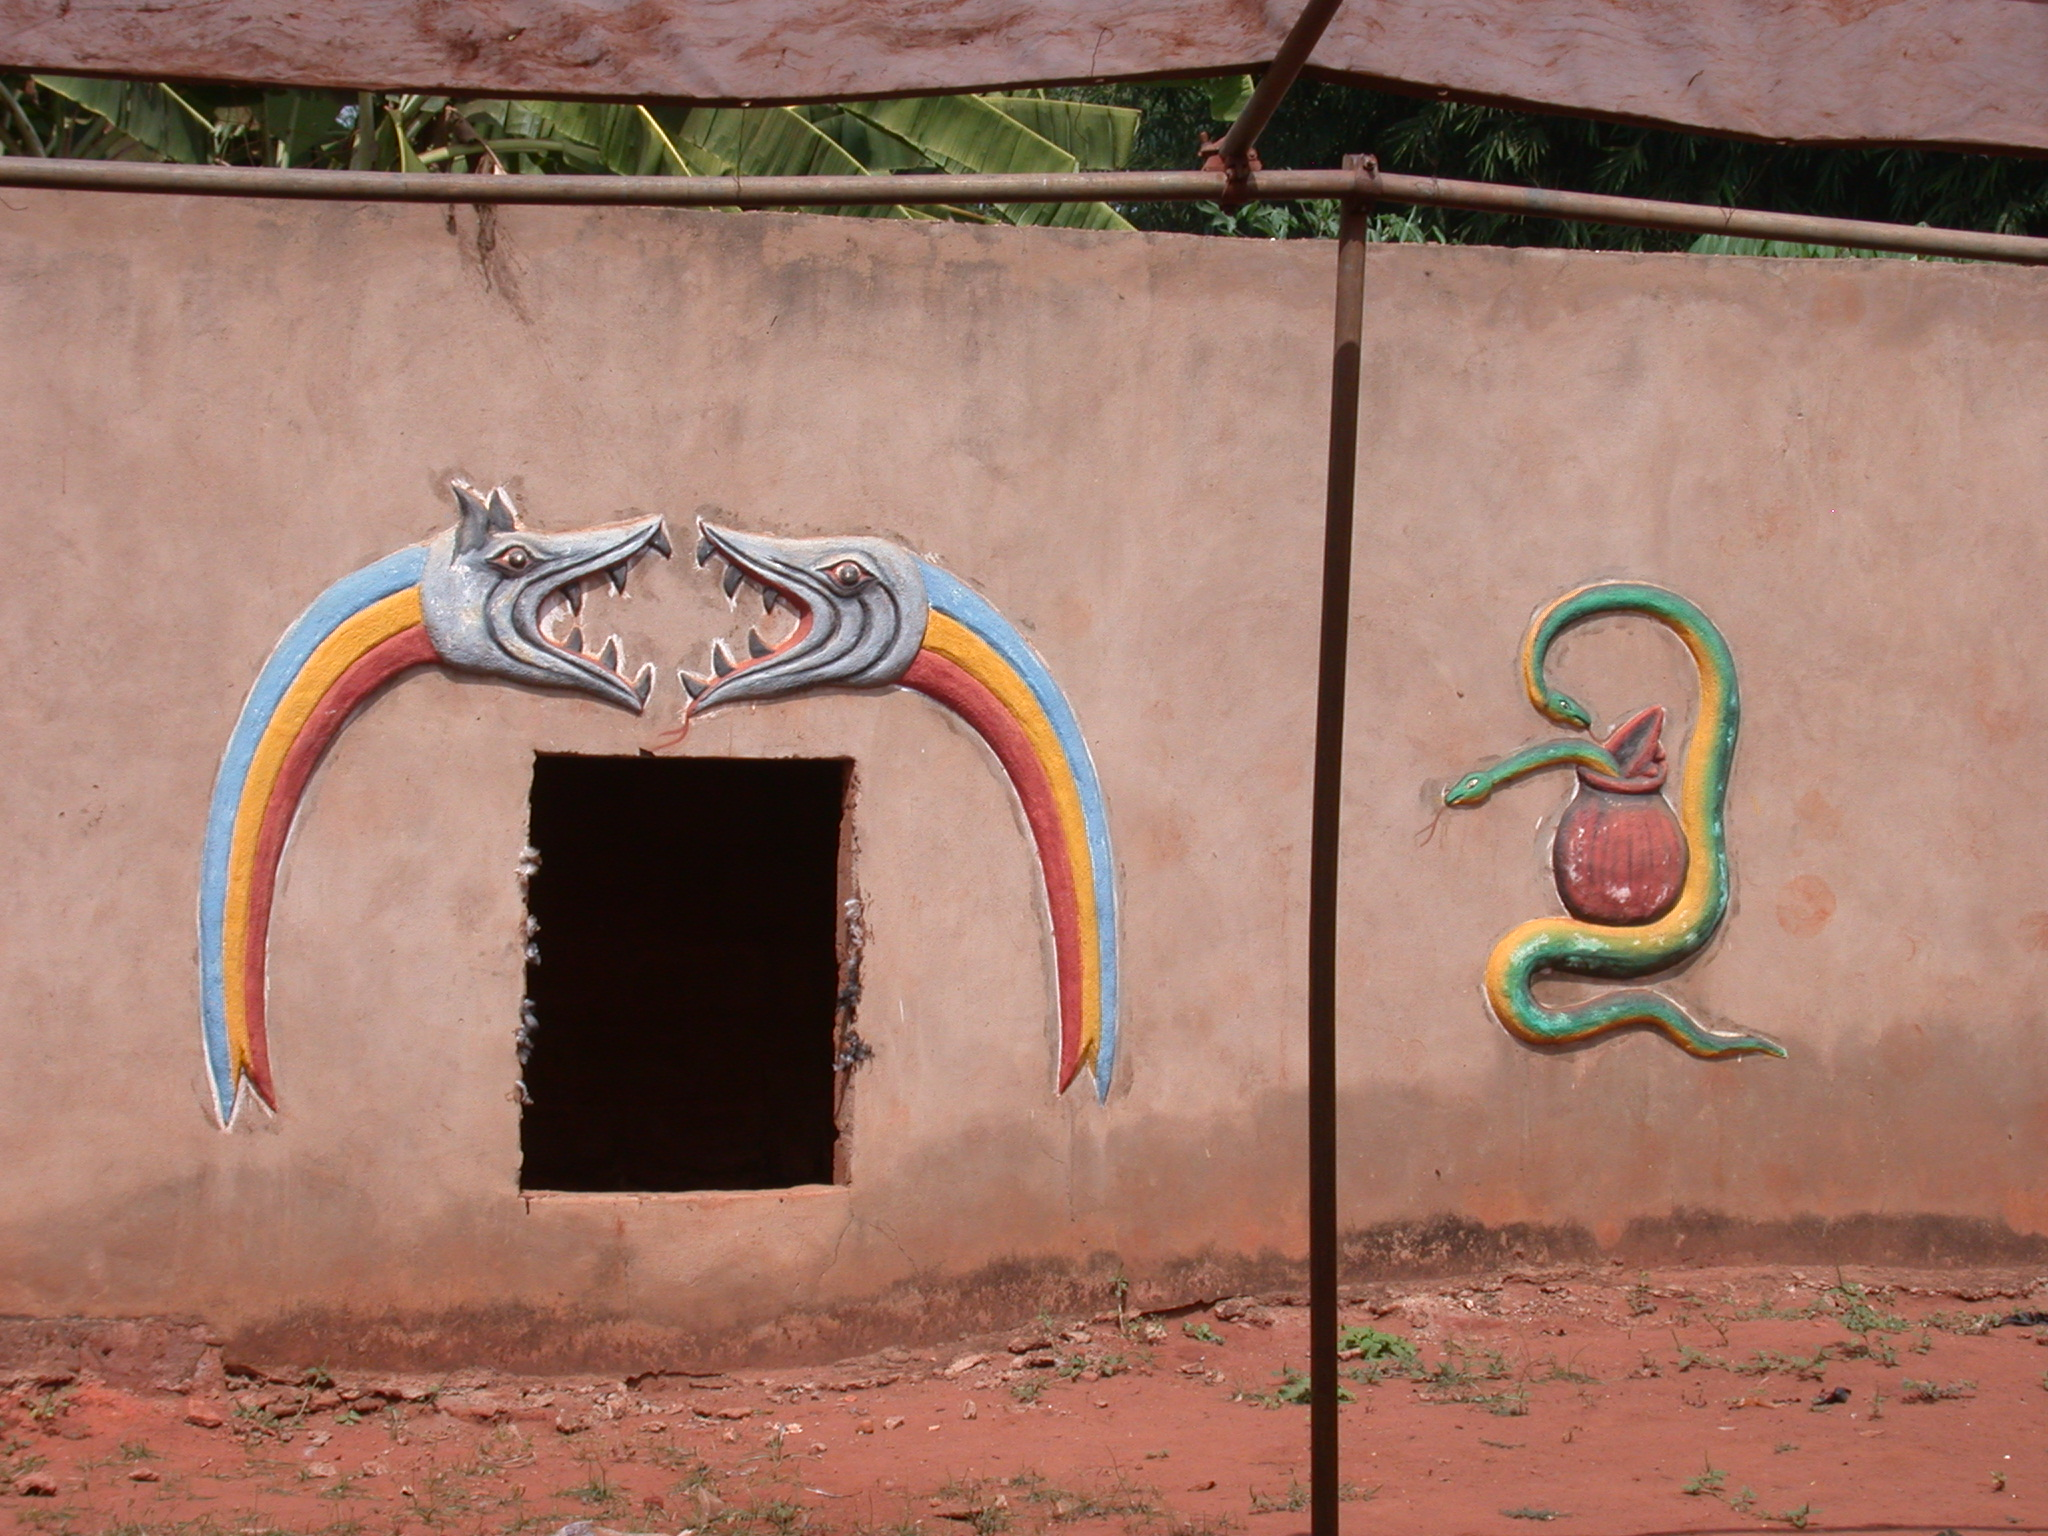 Symbols on Compound Wall, One Reminiscent of Dan Rainbow Serpent, Houemou Agonglo Temple, Abomey, Benin